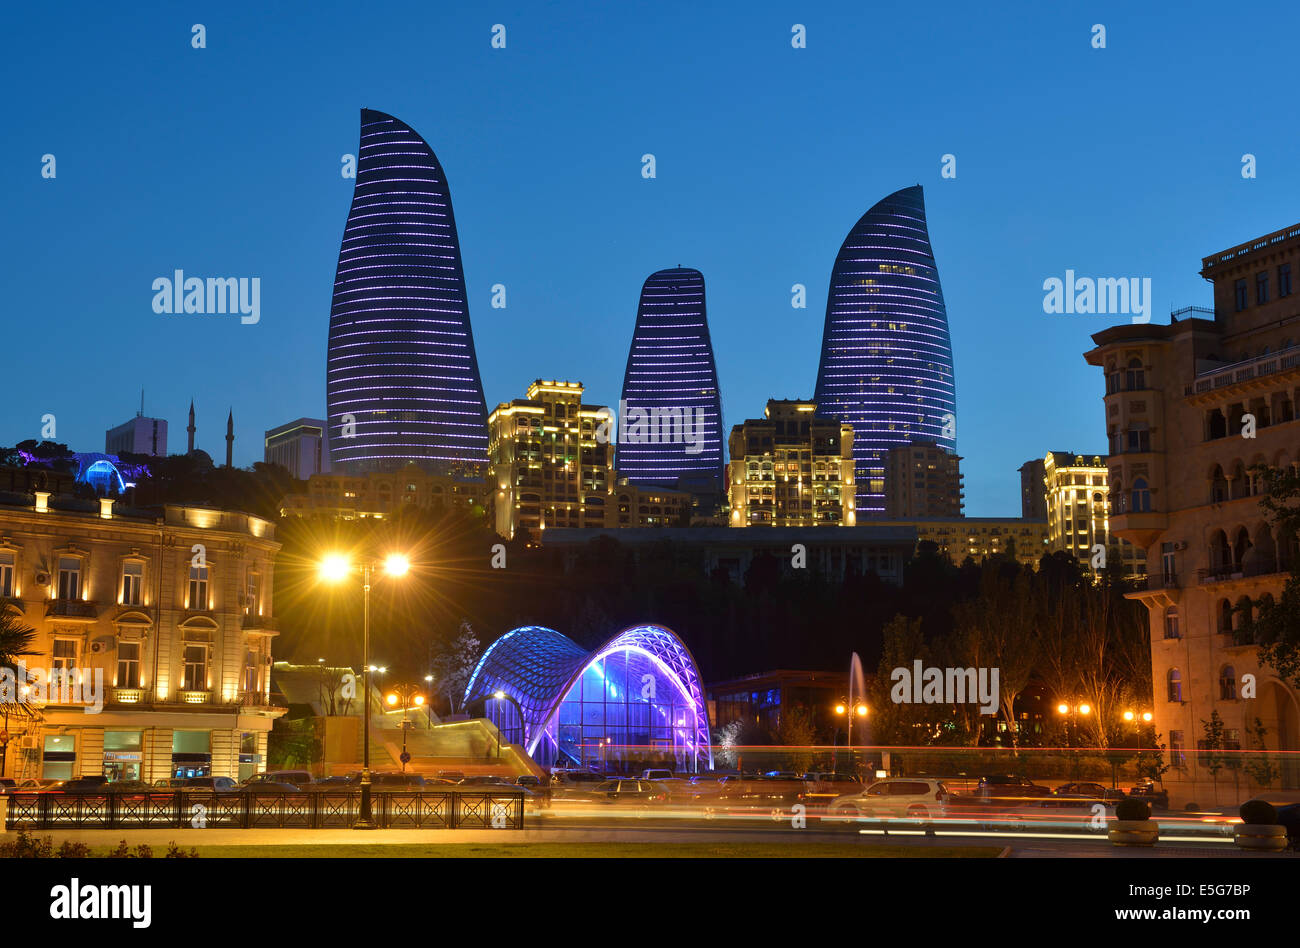 Flame Towers at dusk, Baku, Azerbaijan - Stock Image